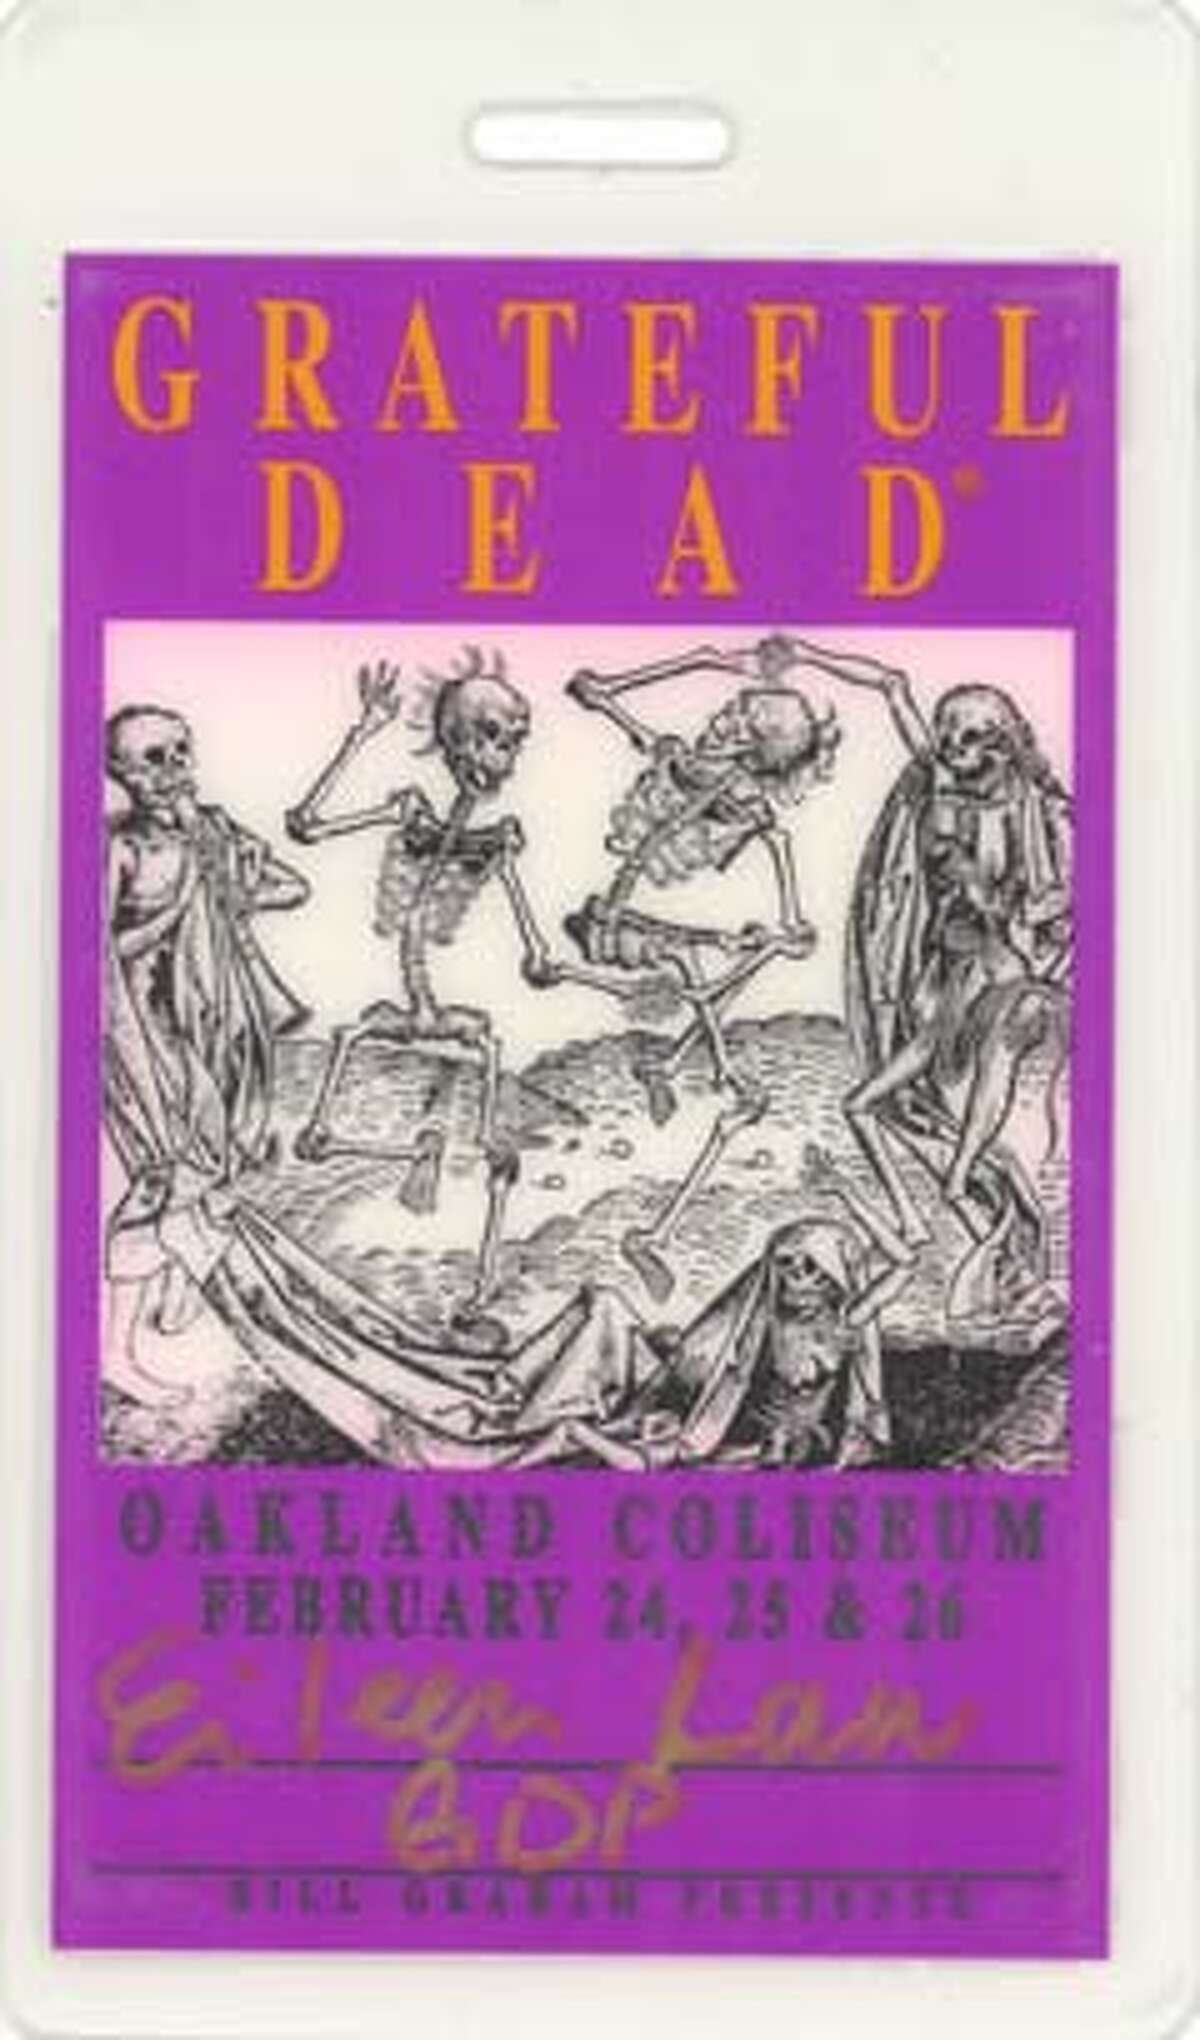 A pass for the Feb. 24, 1995, Oakland Coliseum Grateful Dead concert. Photo courtesy of Grateful Dead archive